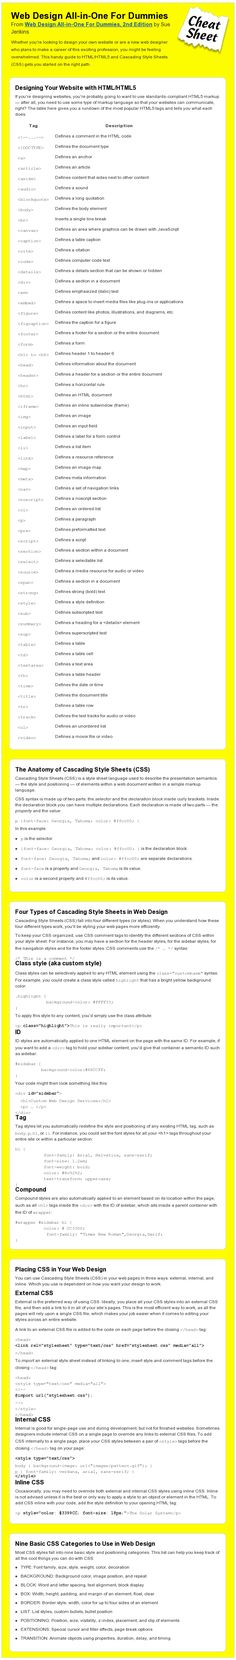 Web Design Cheat Sheet: Handy guide to HTML/HTML5 and Cascading Style Sheets (CSS)